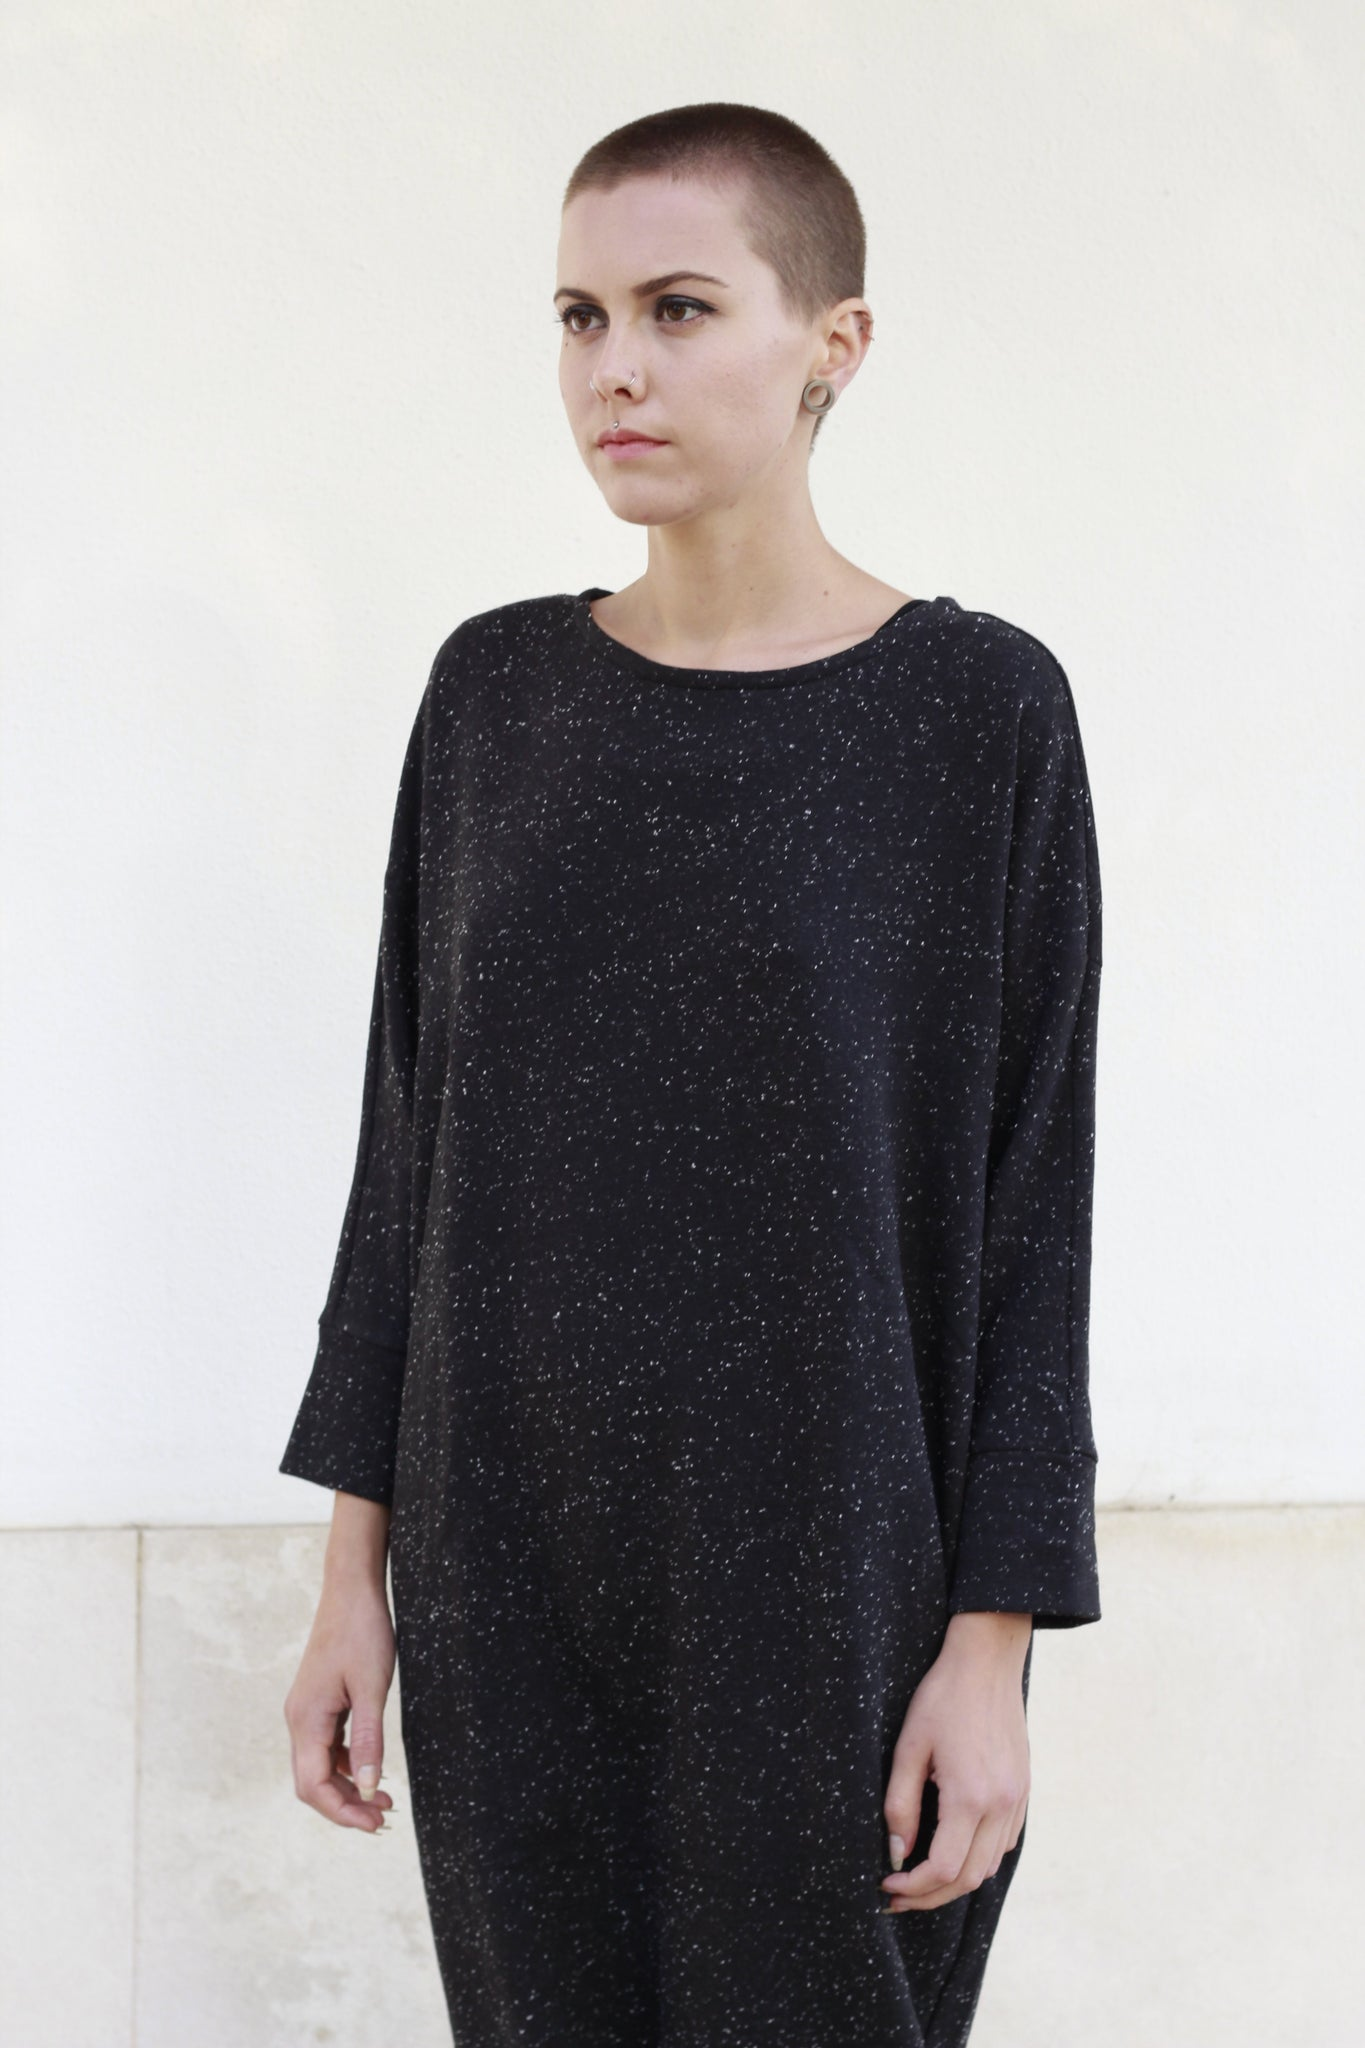 Dress Minimal Black With Small Dots